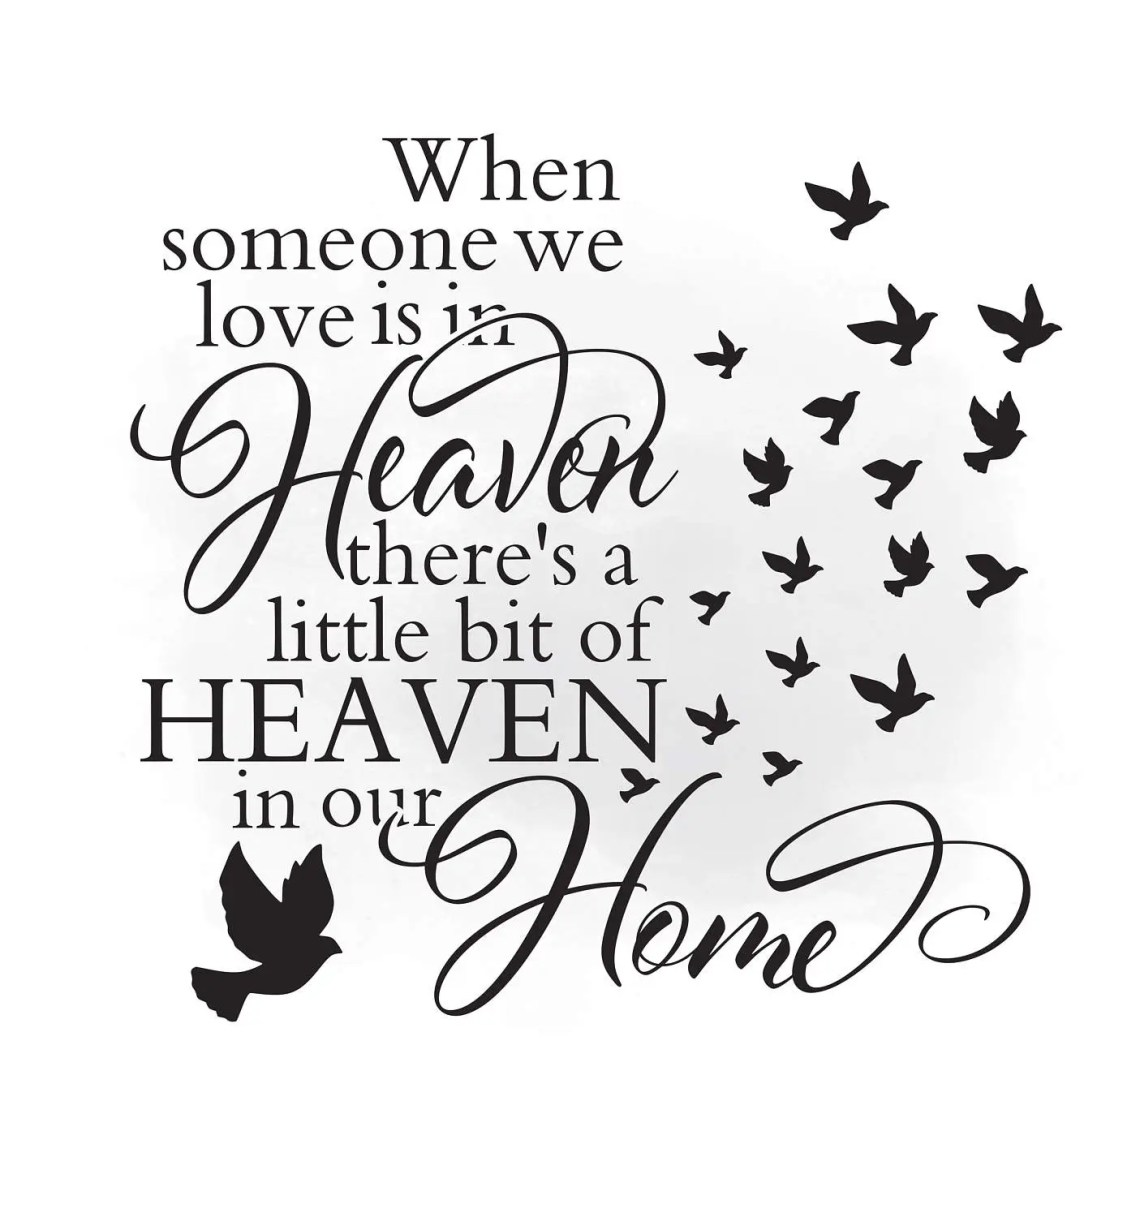 Download Heaven in our home SVG clipart in loving memory Quote Art